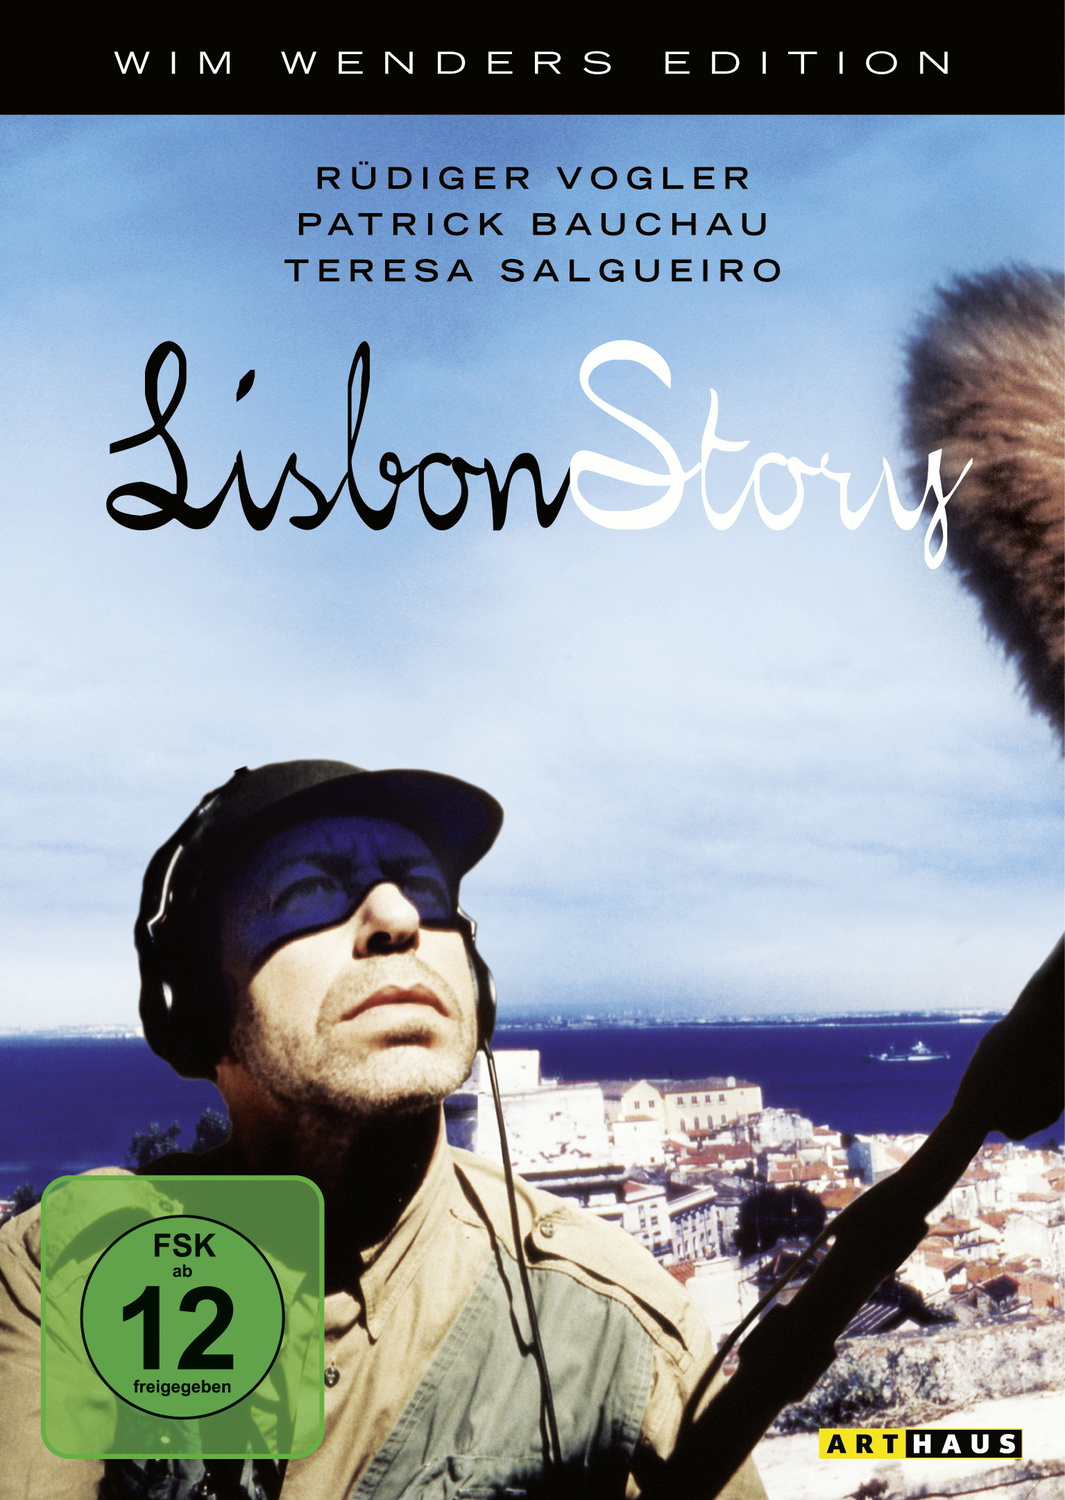 Lisbon Story - Wim Wenders Edition